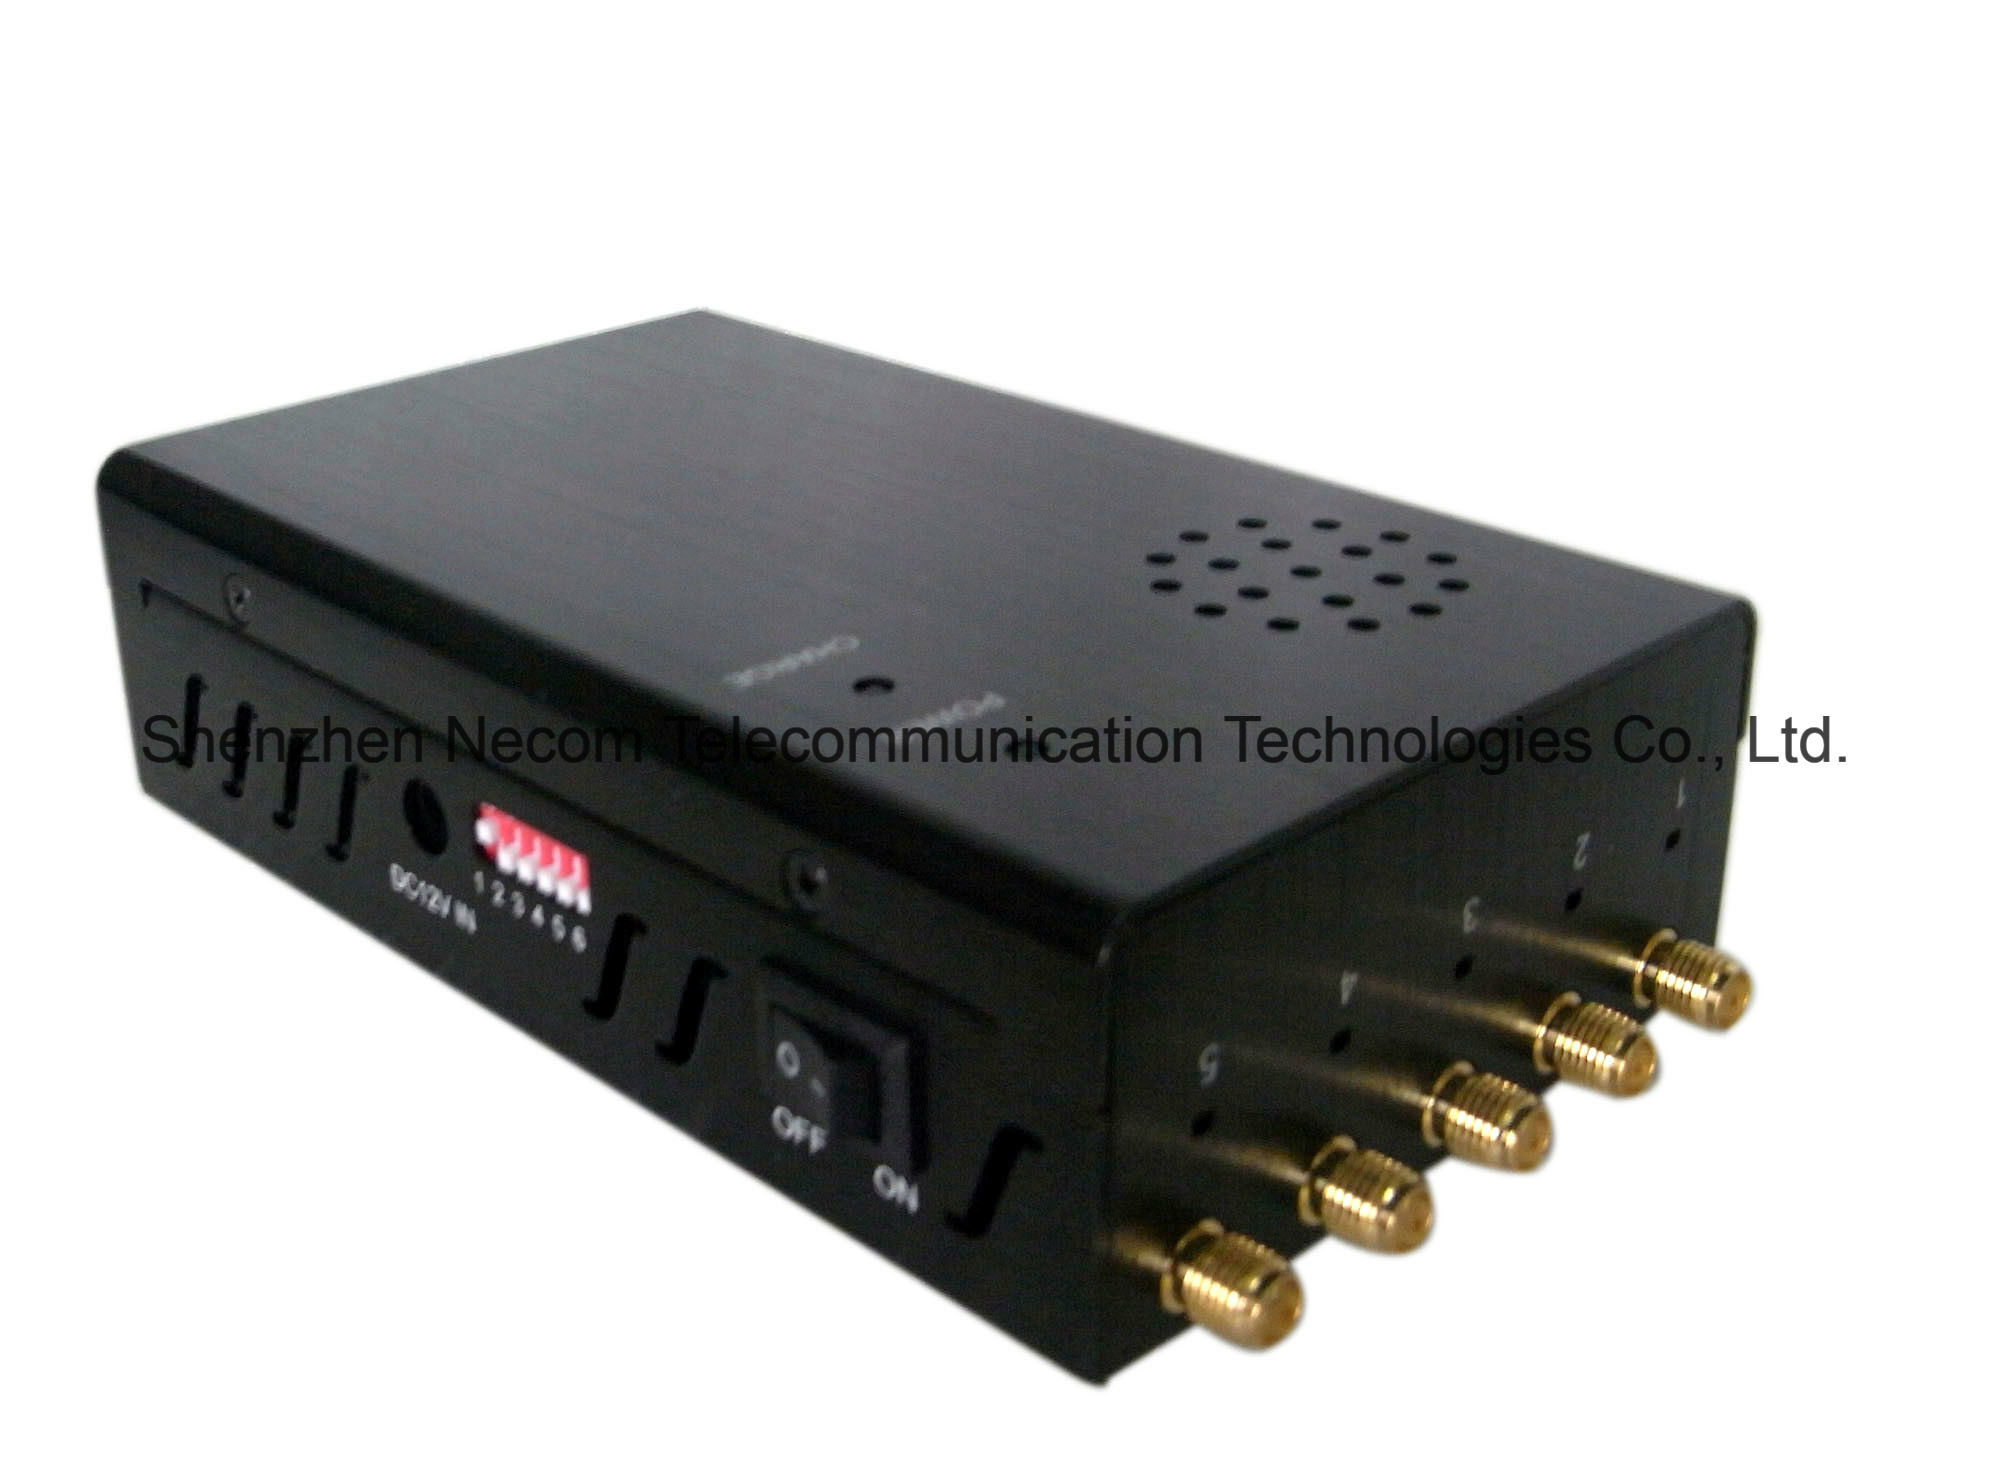 frequency jammer - China Fashion Style Newest CDMA/GSM/Dcs/Phs/3G Cell Phone Signal Jammer - China 5 Band Signal Blockers, Five Antennas Jammers